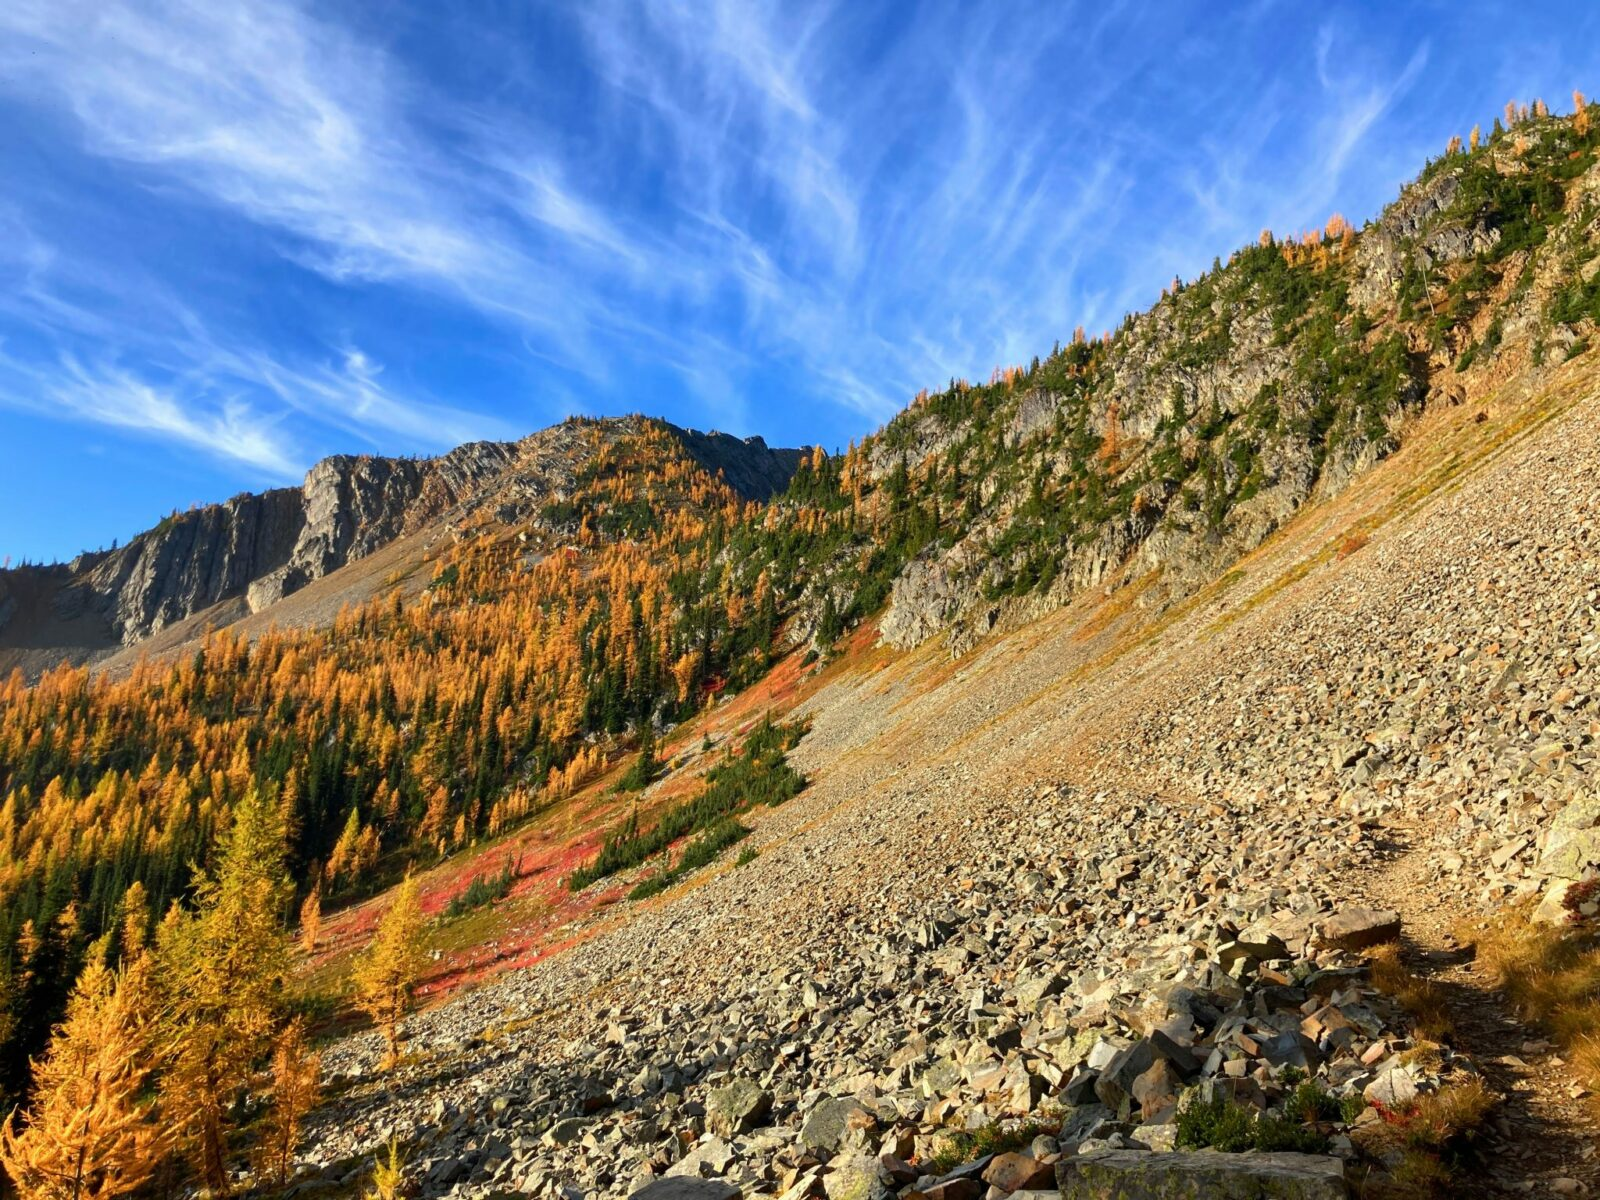 A rocky mountainside with evergreen trees and golden larch trees on the way to Grasshopper Pass